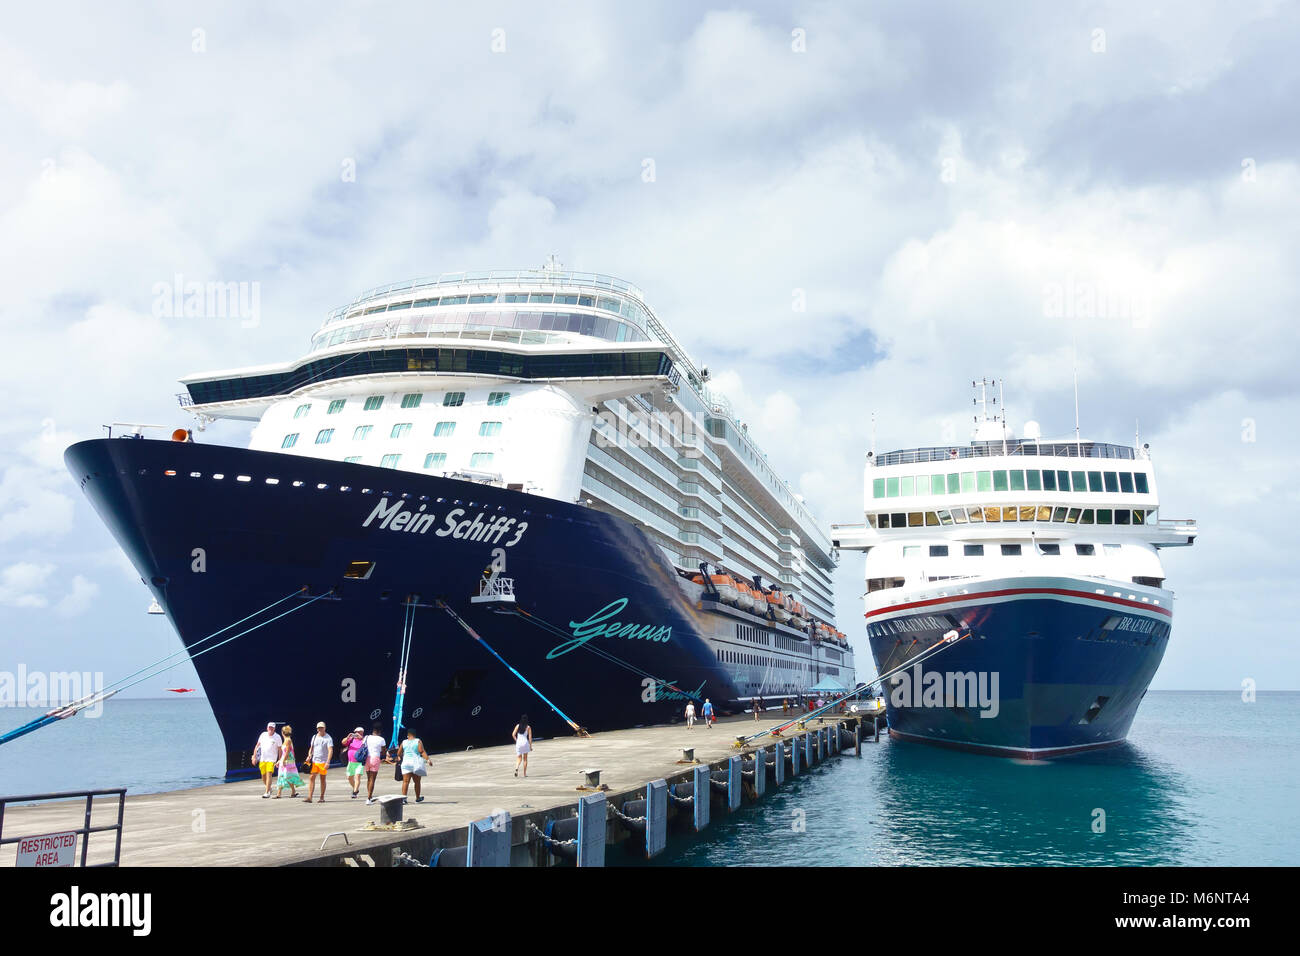 Cruise liner ships Mein Schiff 3 and Braemar docked at St George's, Grenada, Caribbean - Stock Image